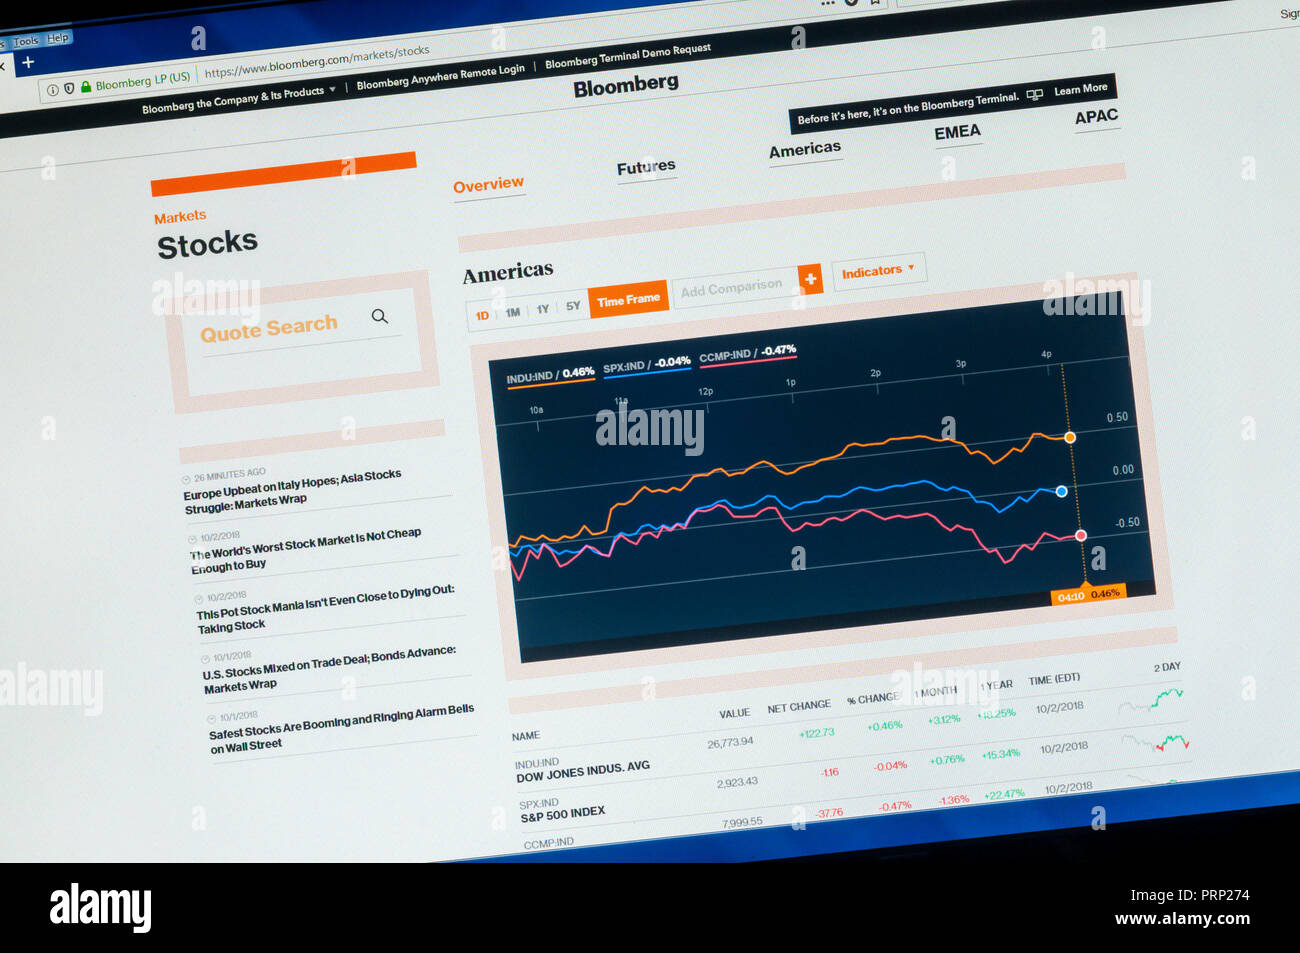 Home page of the Bloomberg website showing Stocks graph. - Stock Image